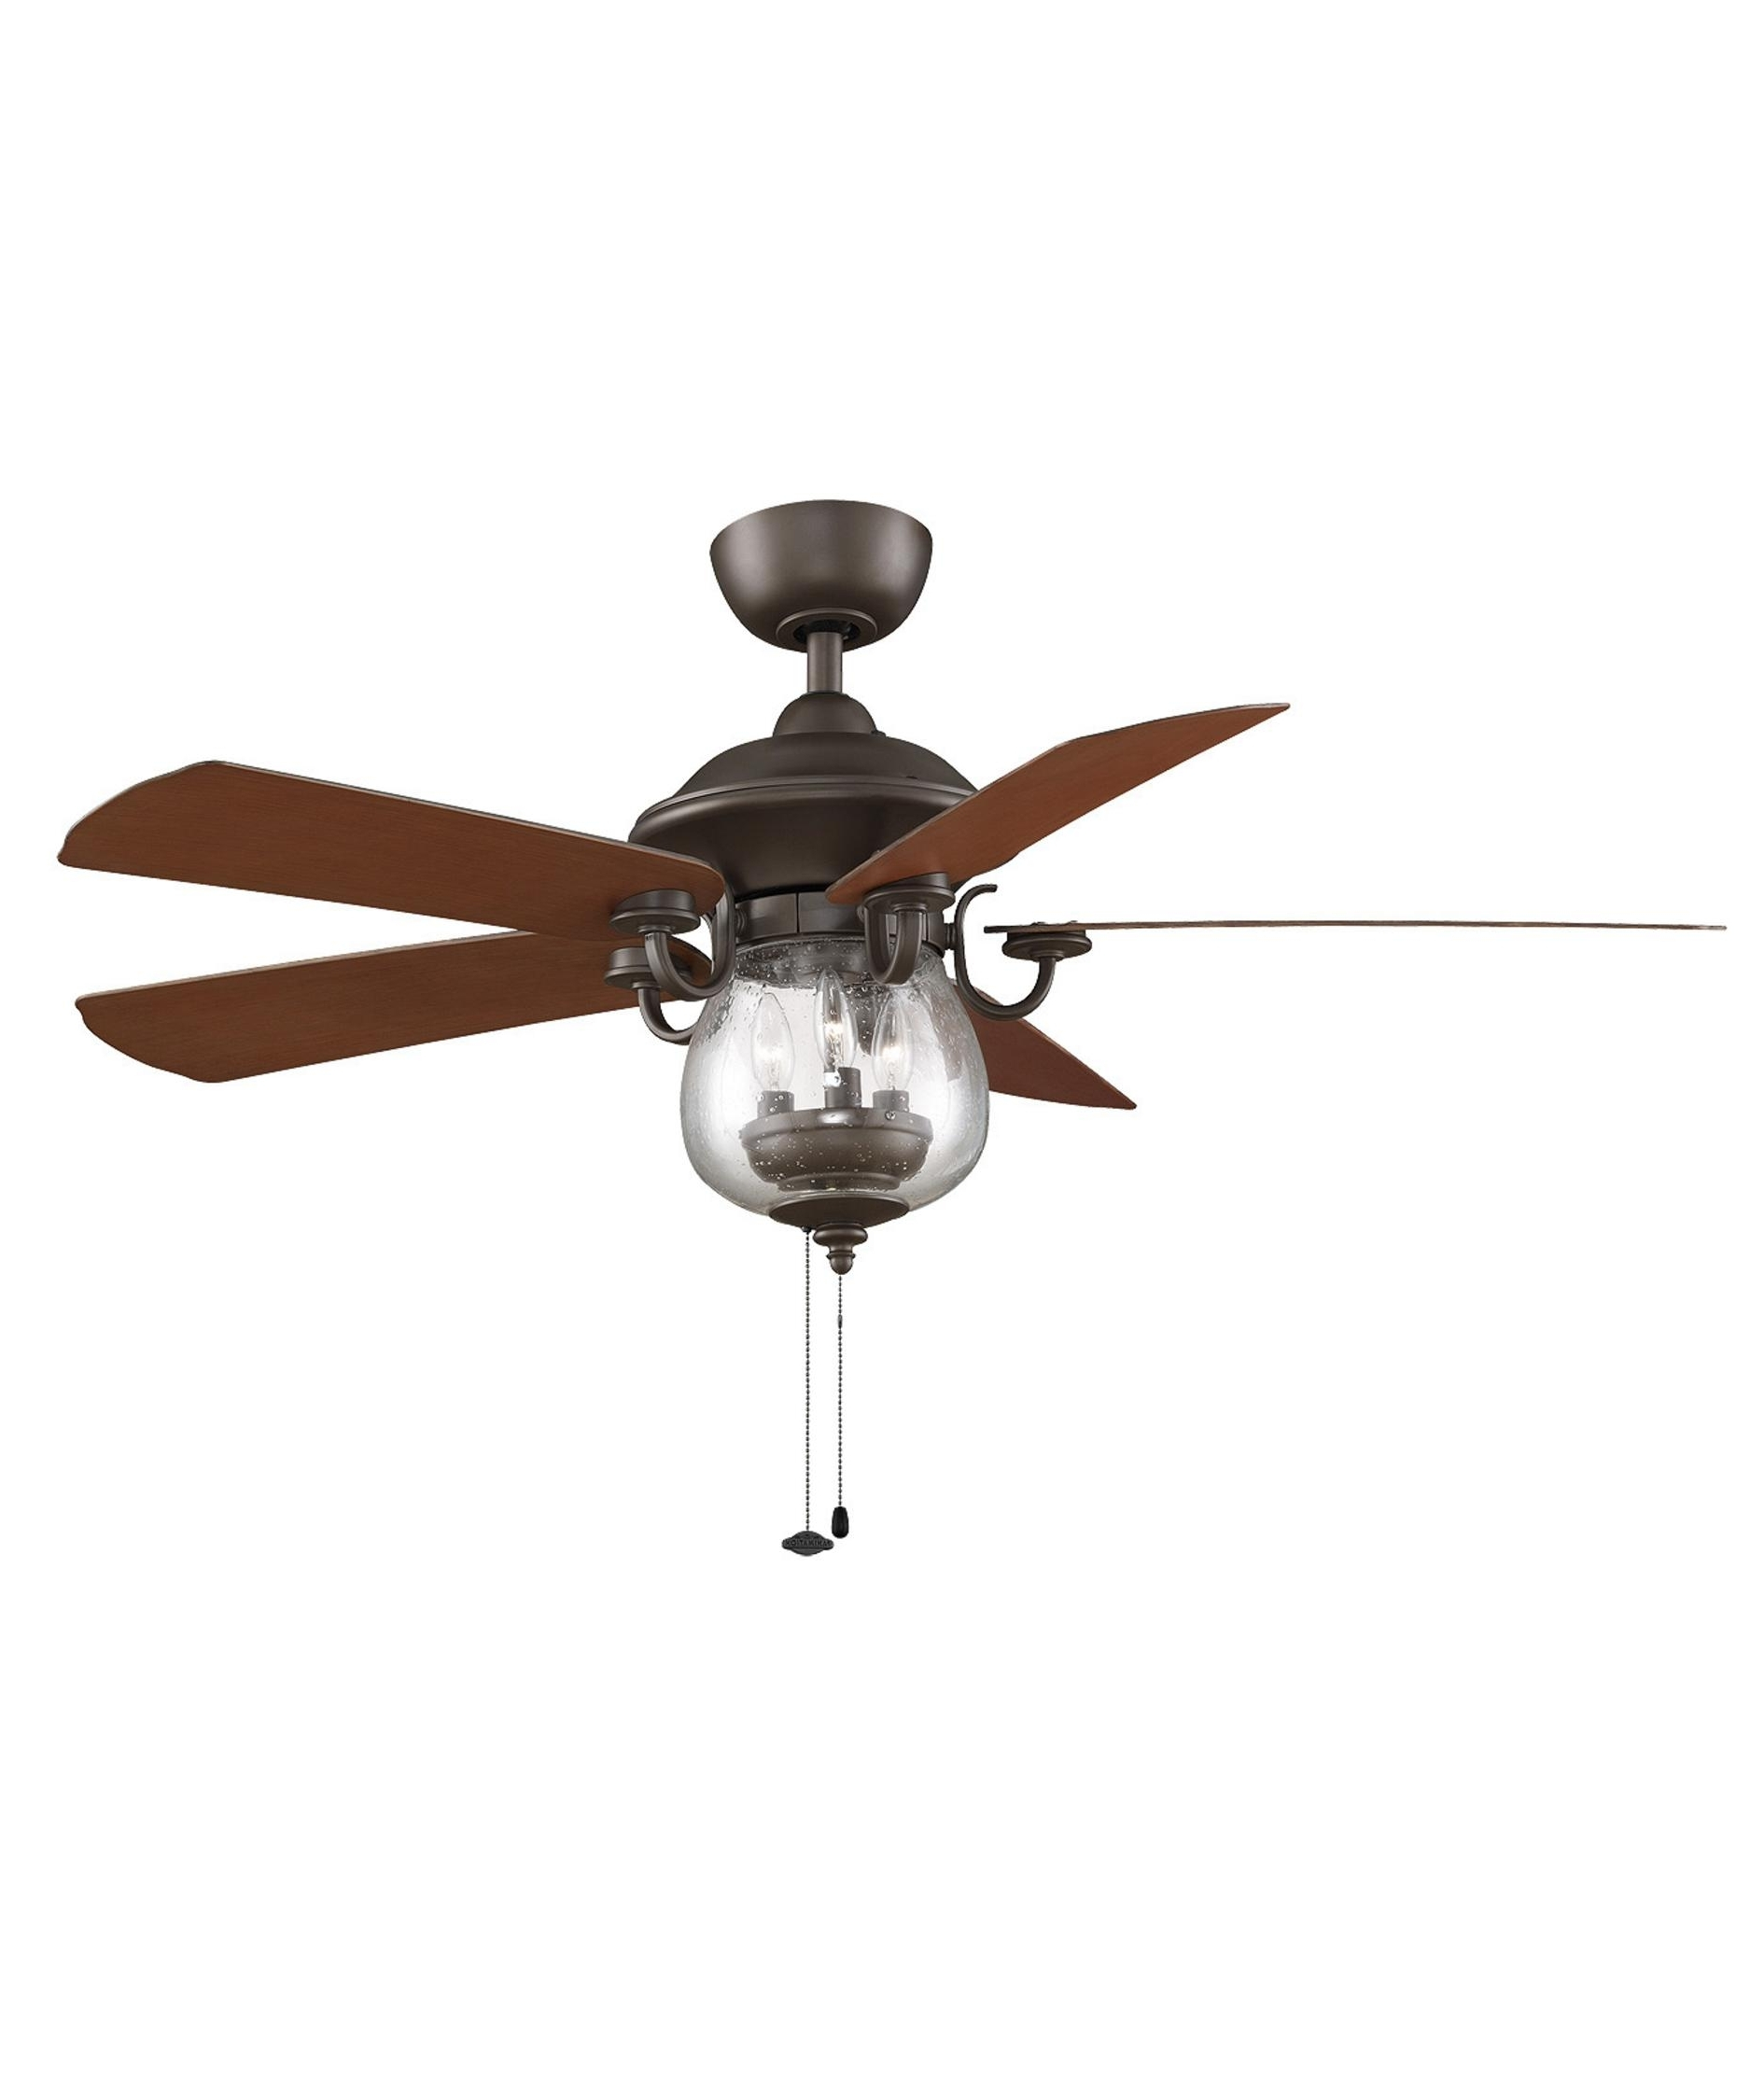 Outdoor Ceiling Fan Lights Throughout Well Liked Fanimation Fp7954 Crestford 52 Inch 5 Blade Ceiling Fan (View 14 of 20)